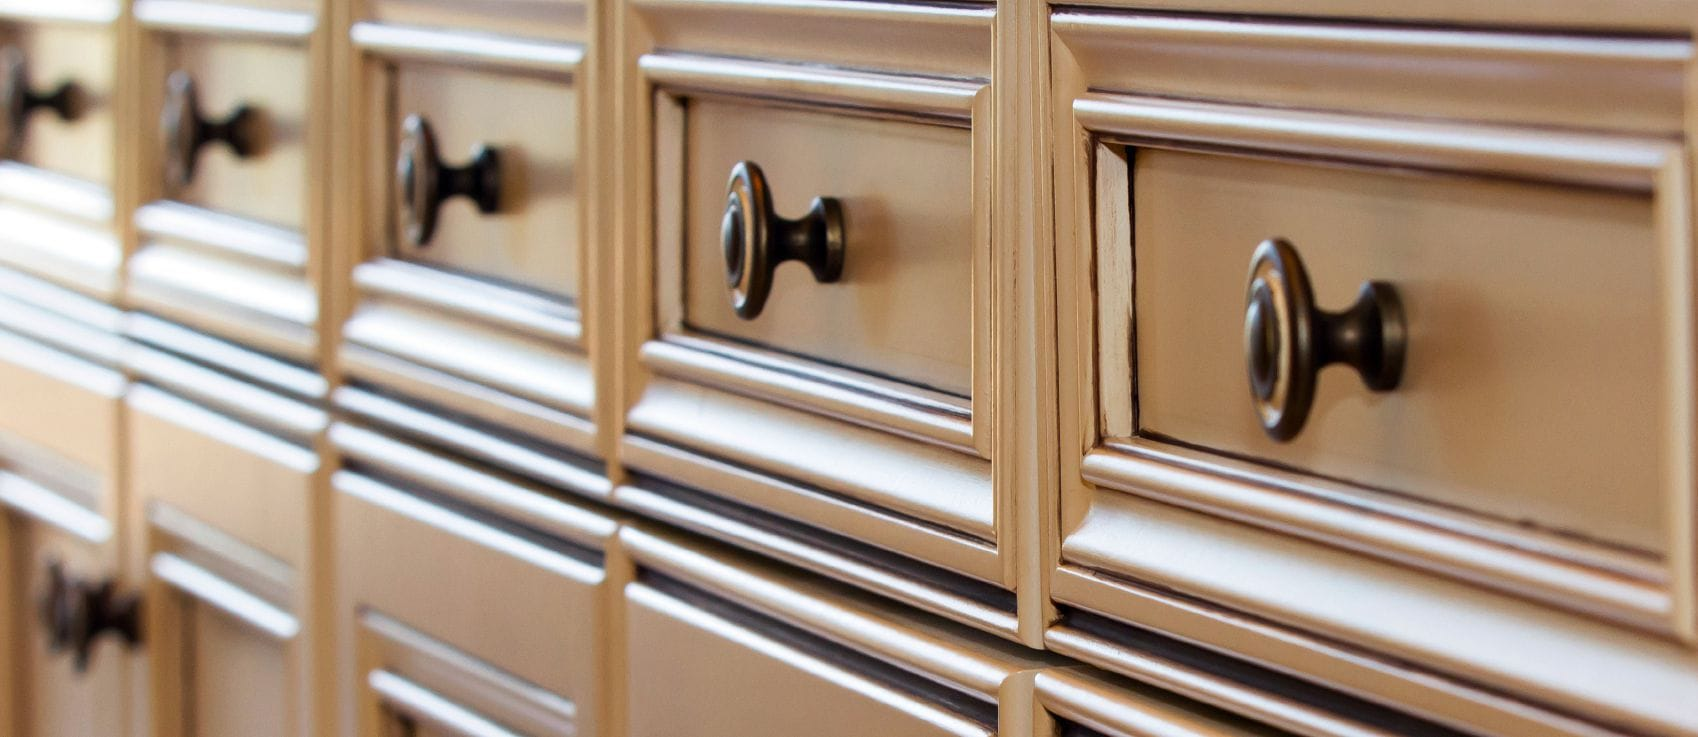 spotlight on cabinet knobs pulls and handles kitchen cabinet door pulls Row of kitchen cabinet drawer fronts